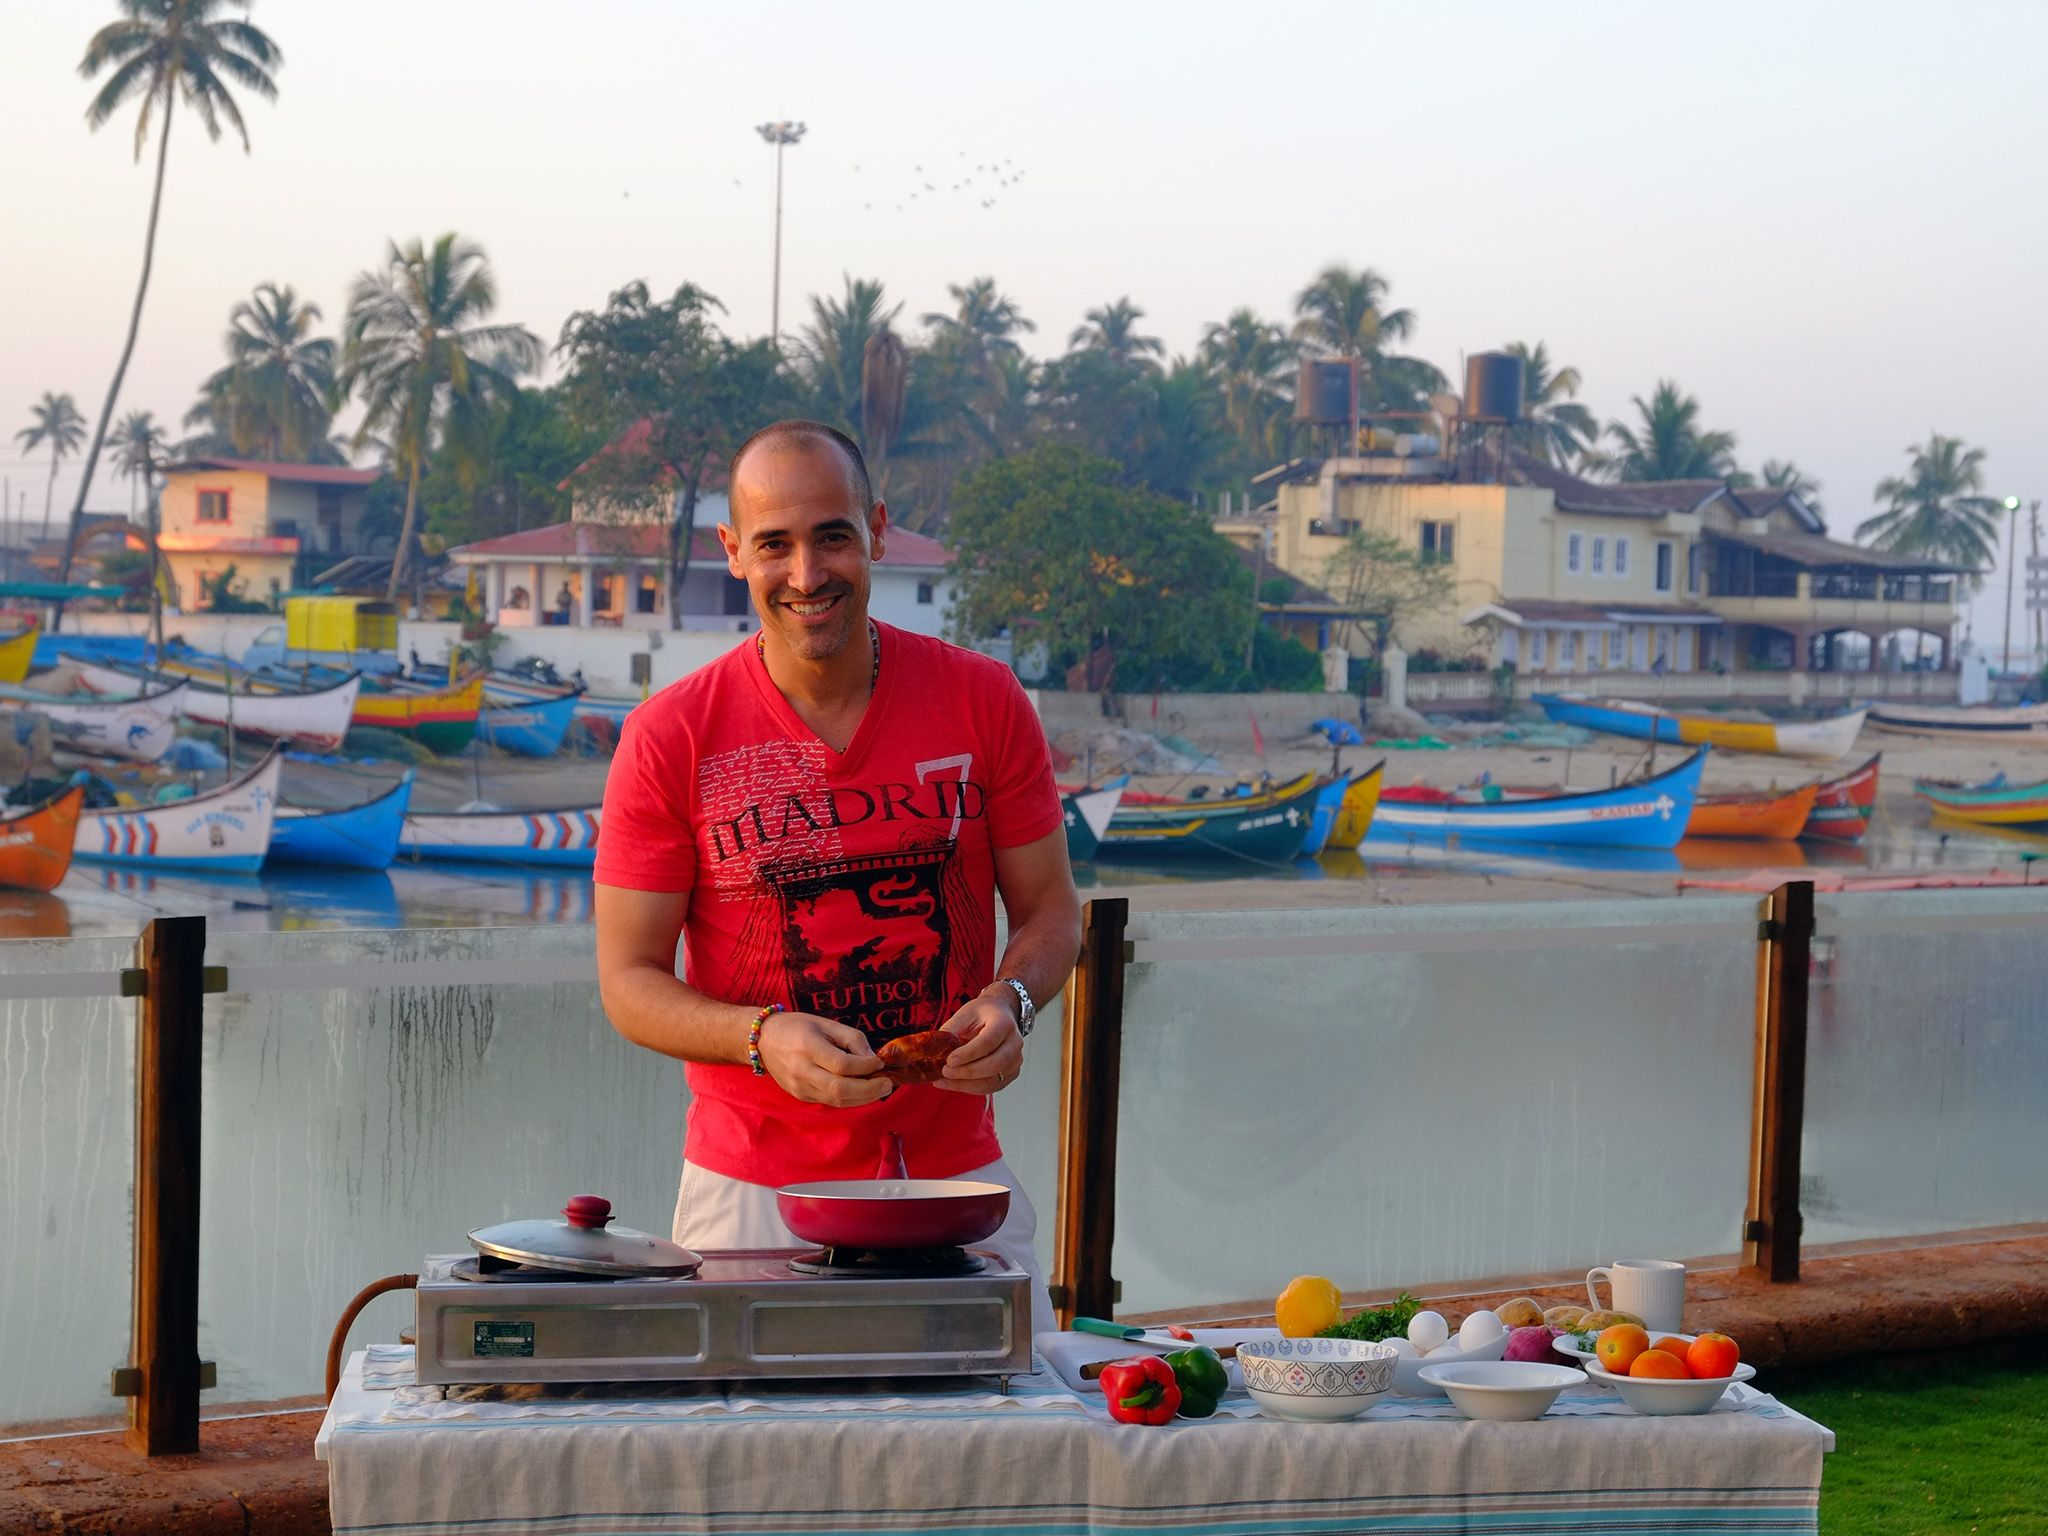 Panjim, Goa, India: David Rocco cooks a quick breakfast for some local fisherman using Goan... [Foto del día - diciembre 2015]